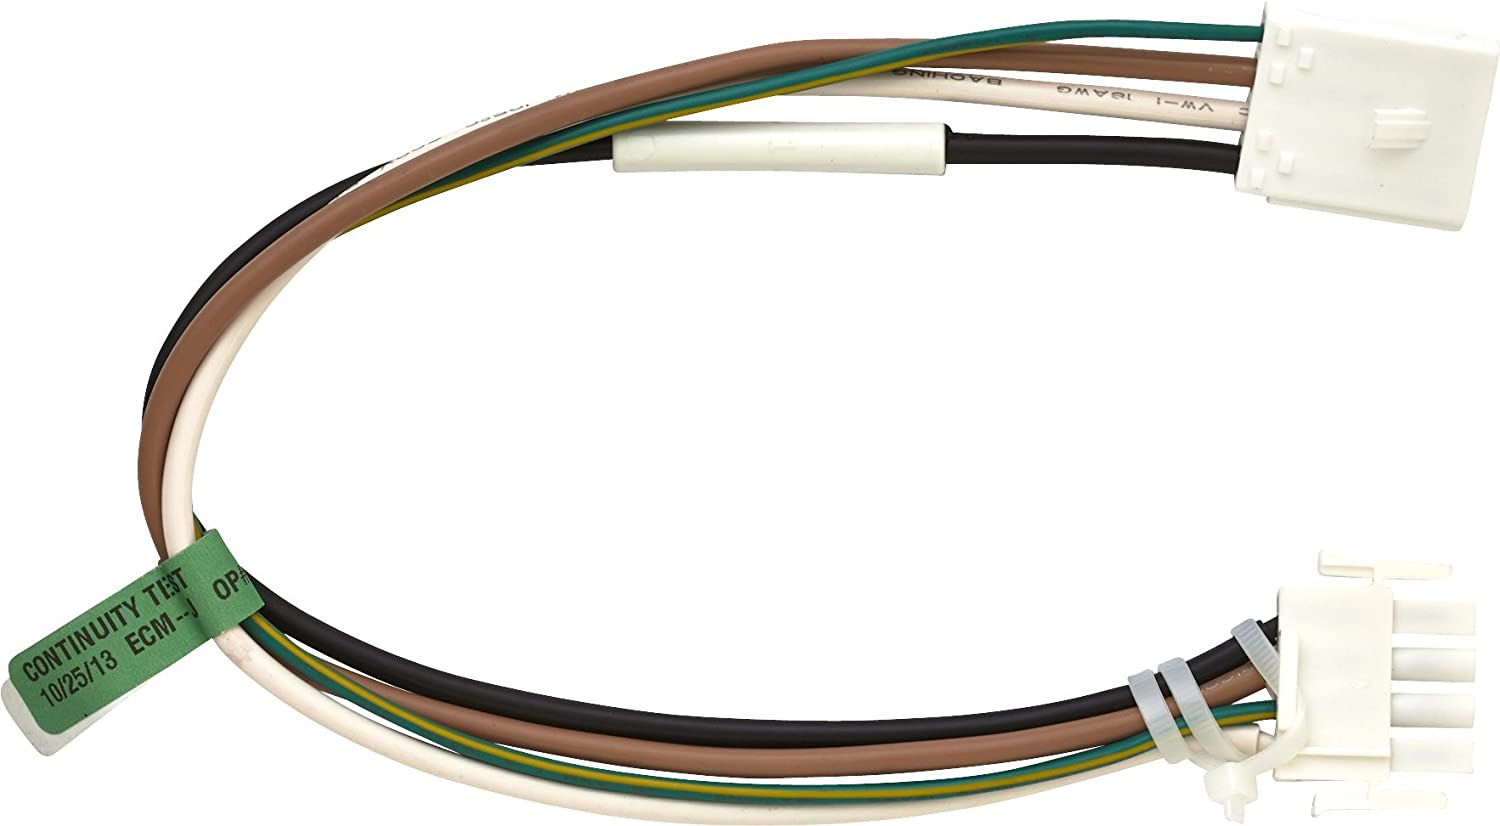 6113euQ4aCL._SL1500_ amazon com whirlpool d7813010 harness icemaker home improvement ice maker wiring harness maytag at panicattacktreatment.co